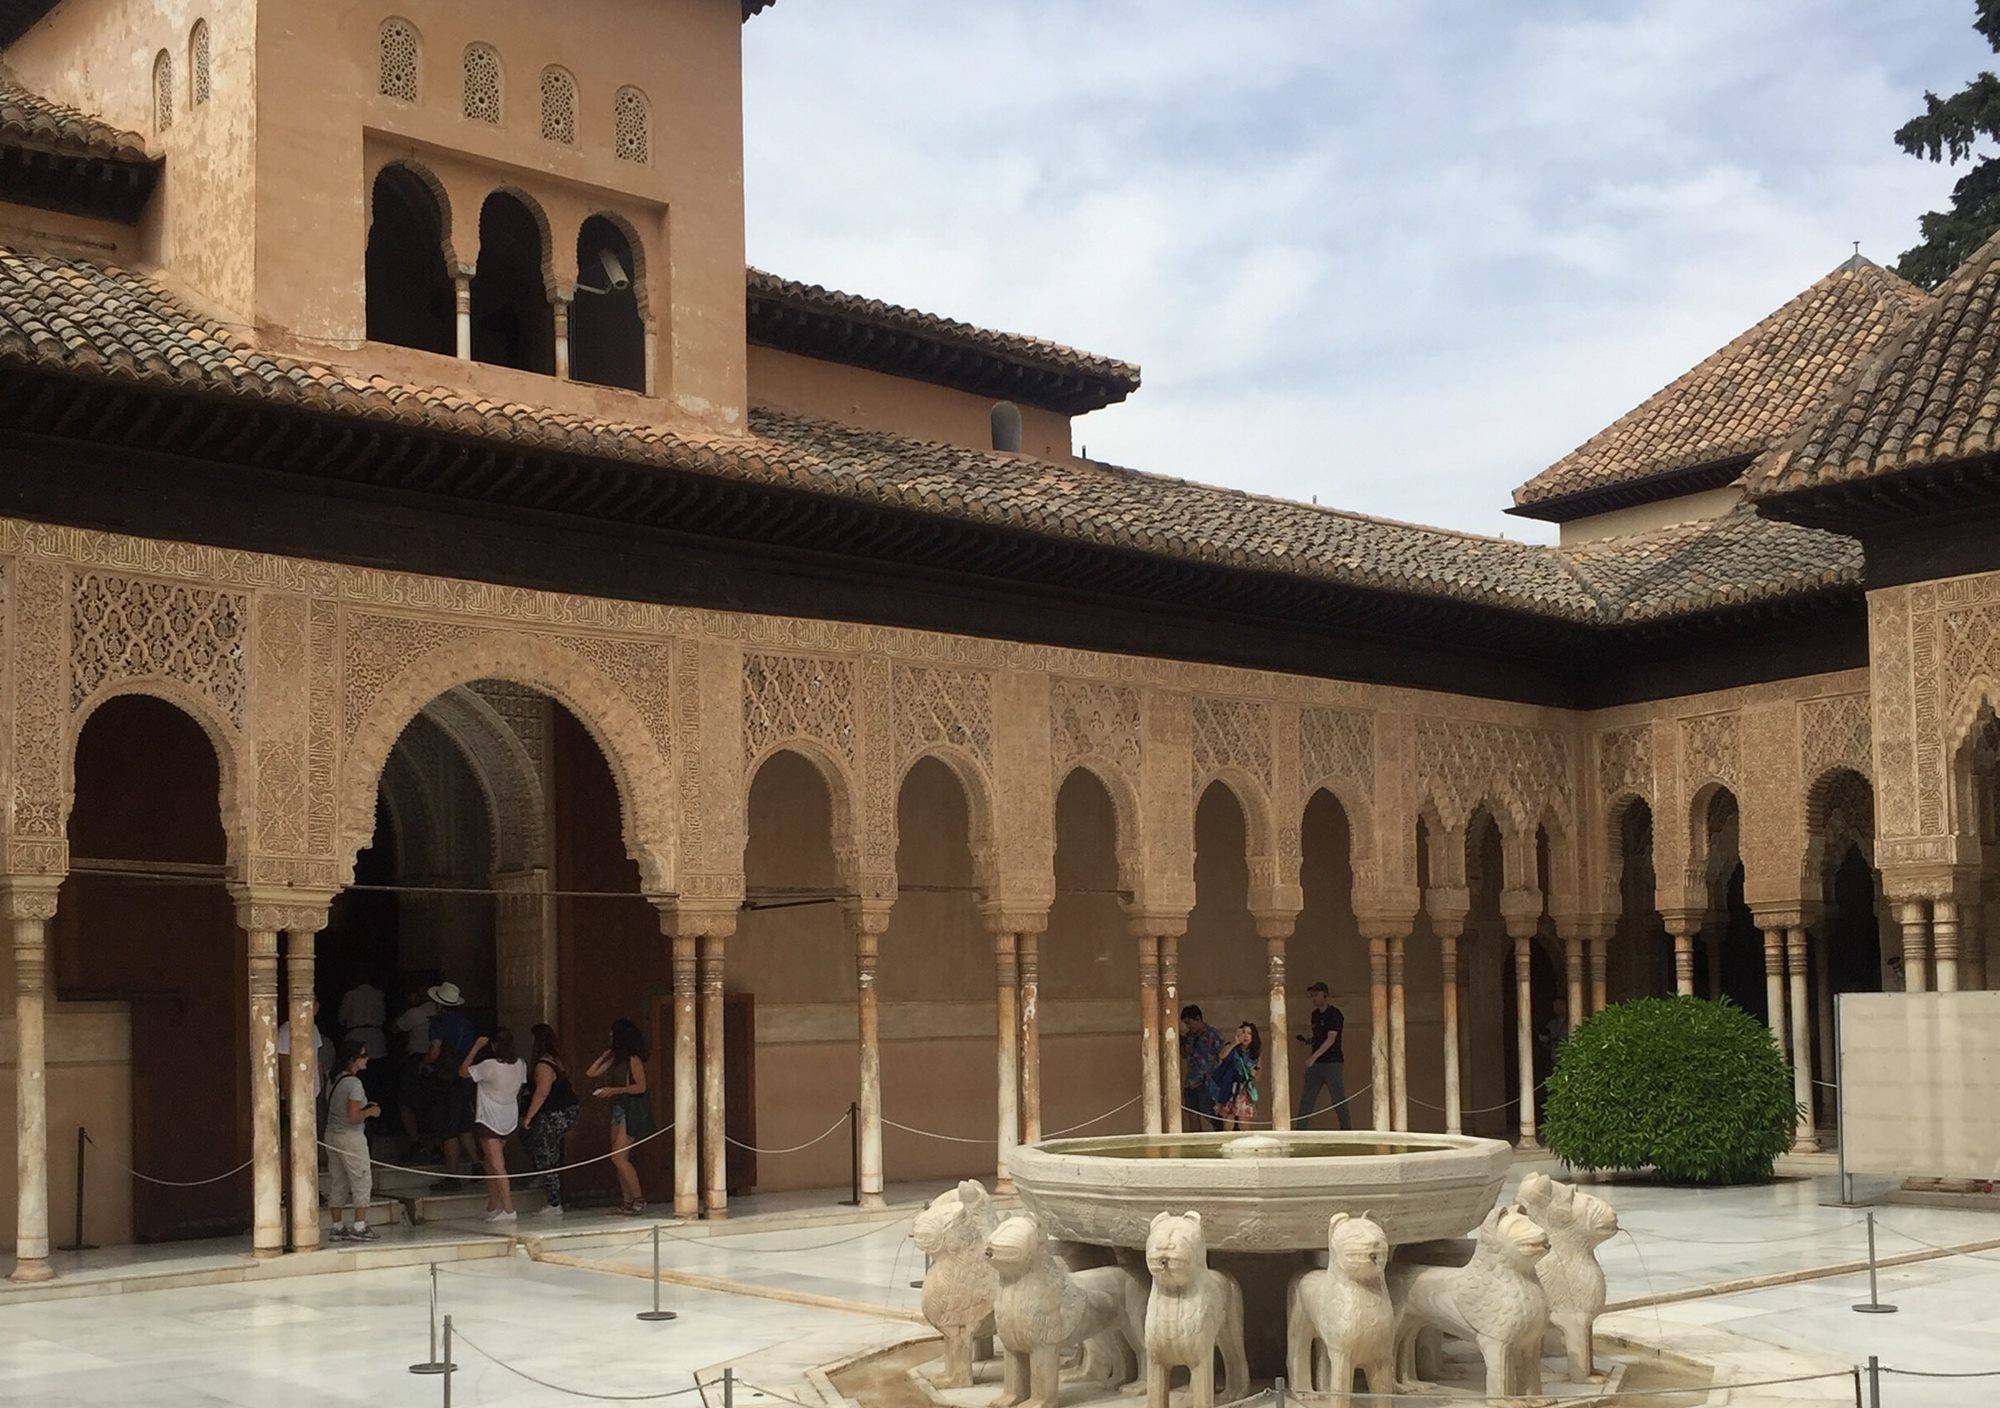 Private tour exploring the Alhambra and the Generalife